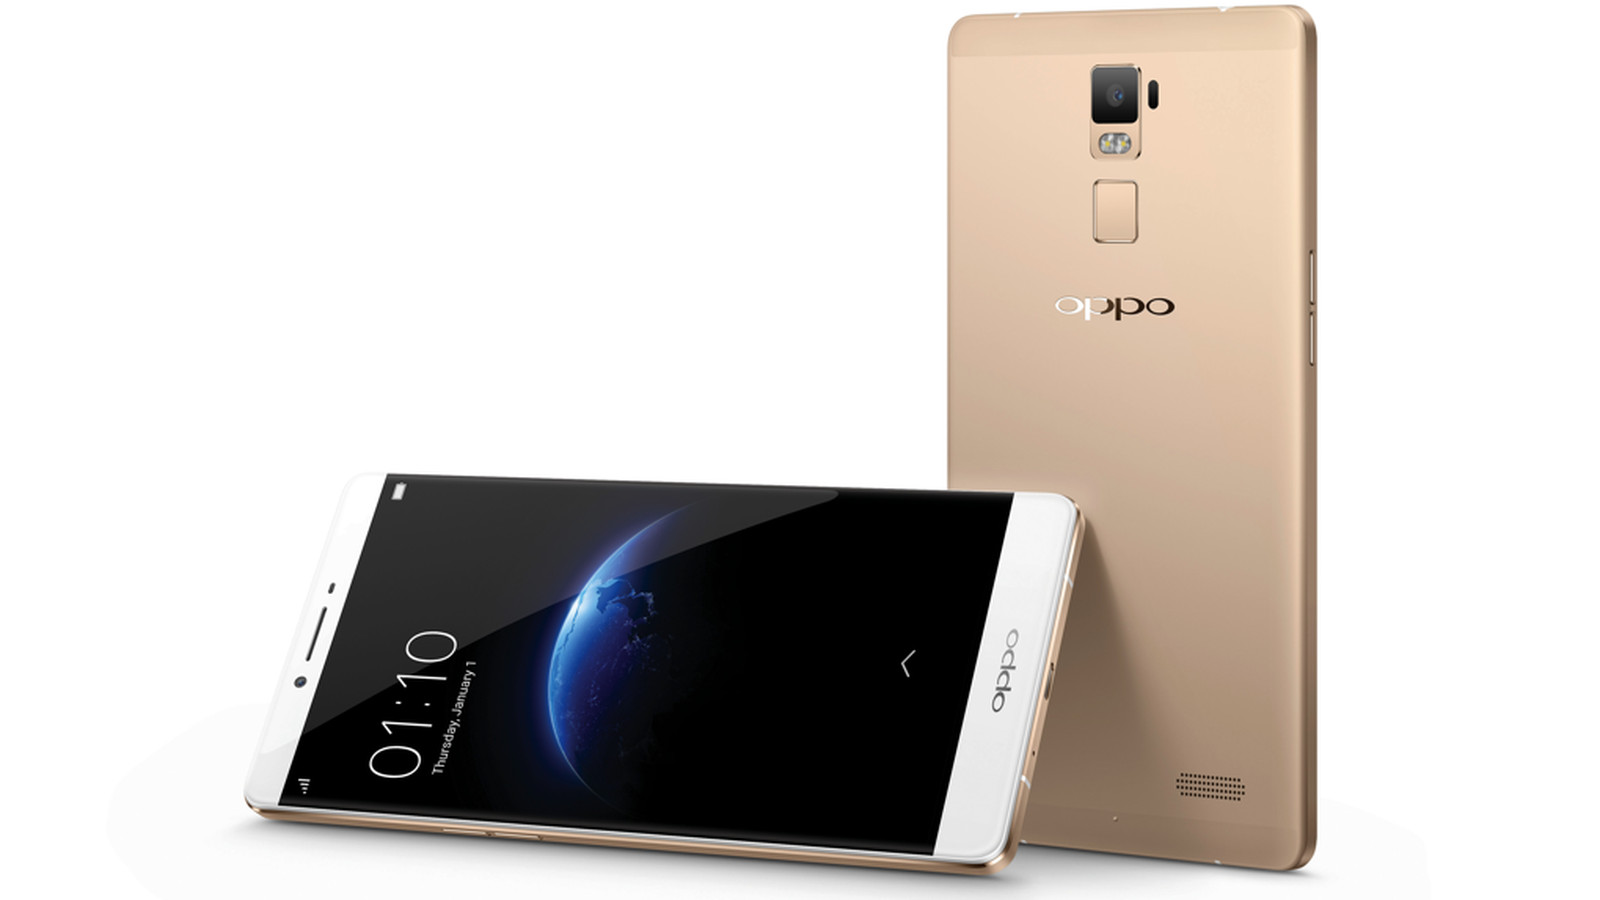 The Oppo R7 Plus has what the Galaxy Note 5 lacks | The Verge